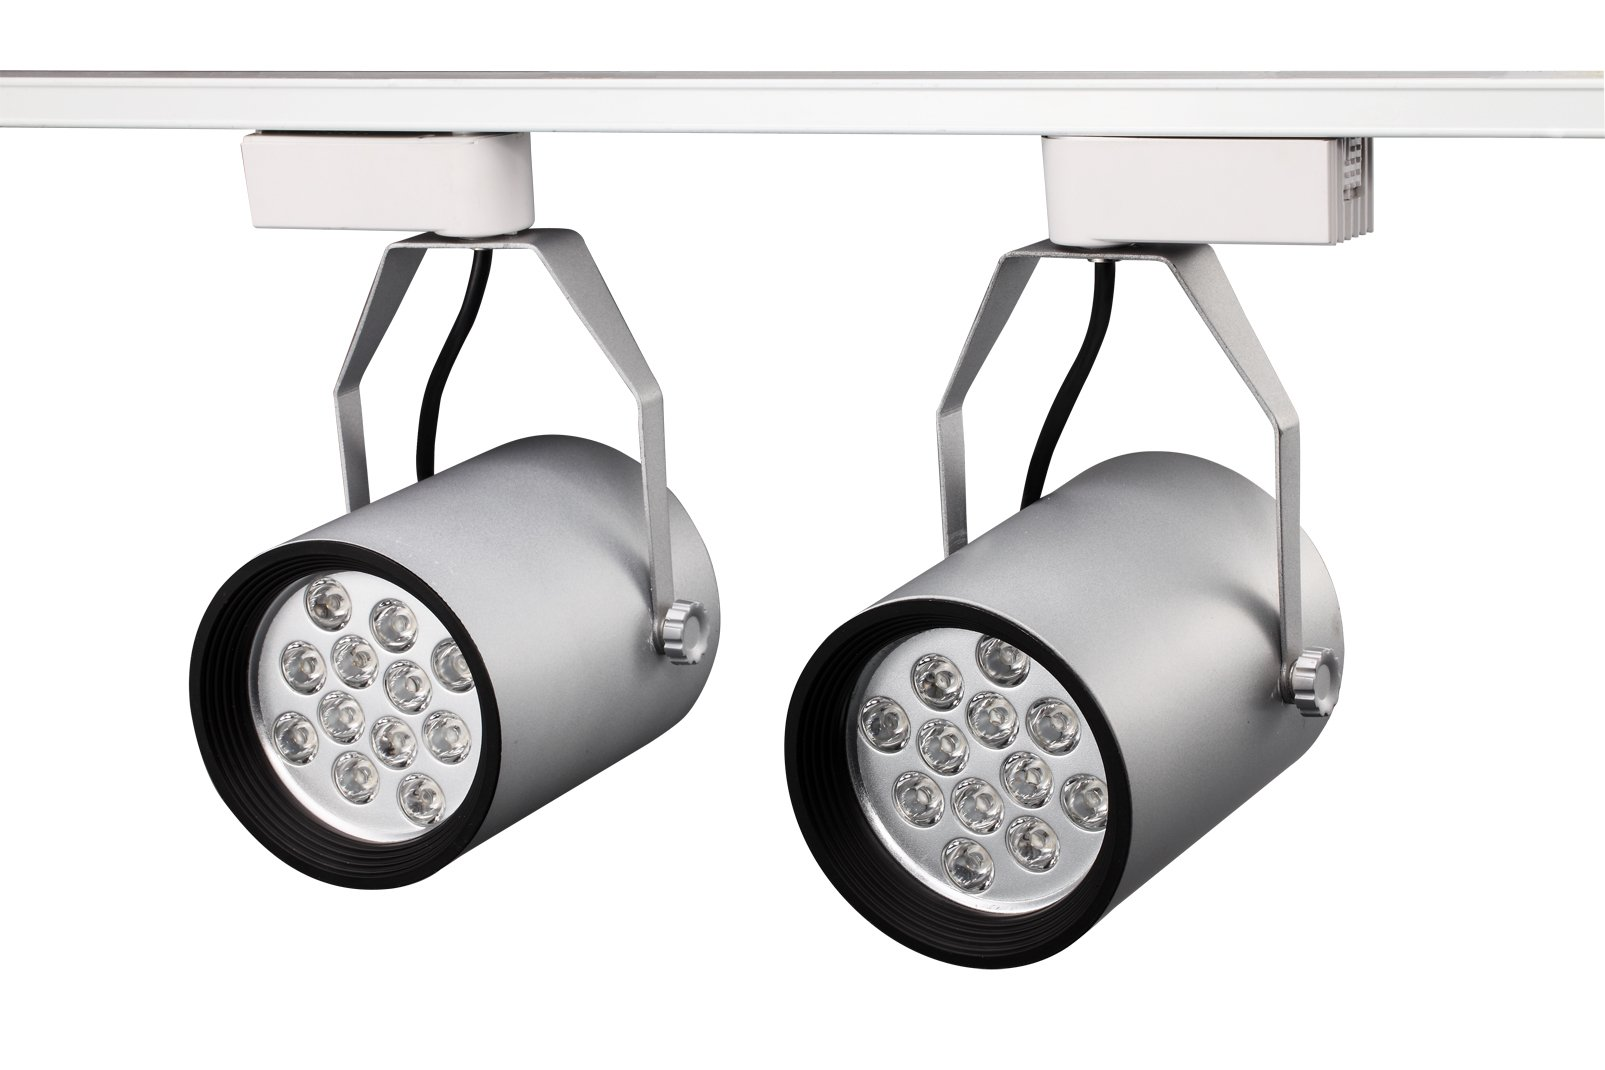 Led track light reyid peru led track light aloadofball Choice Image